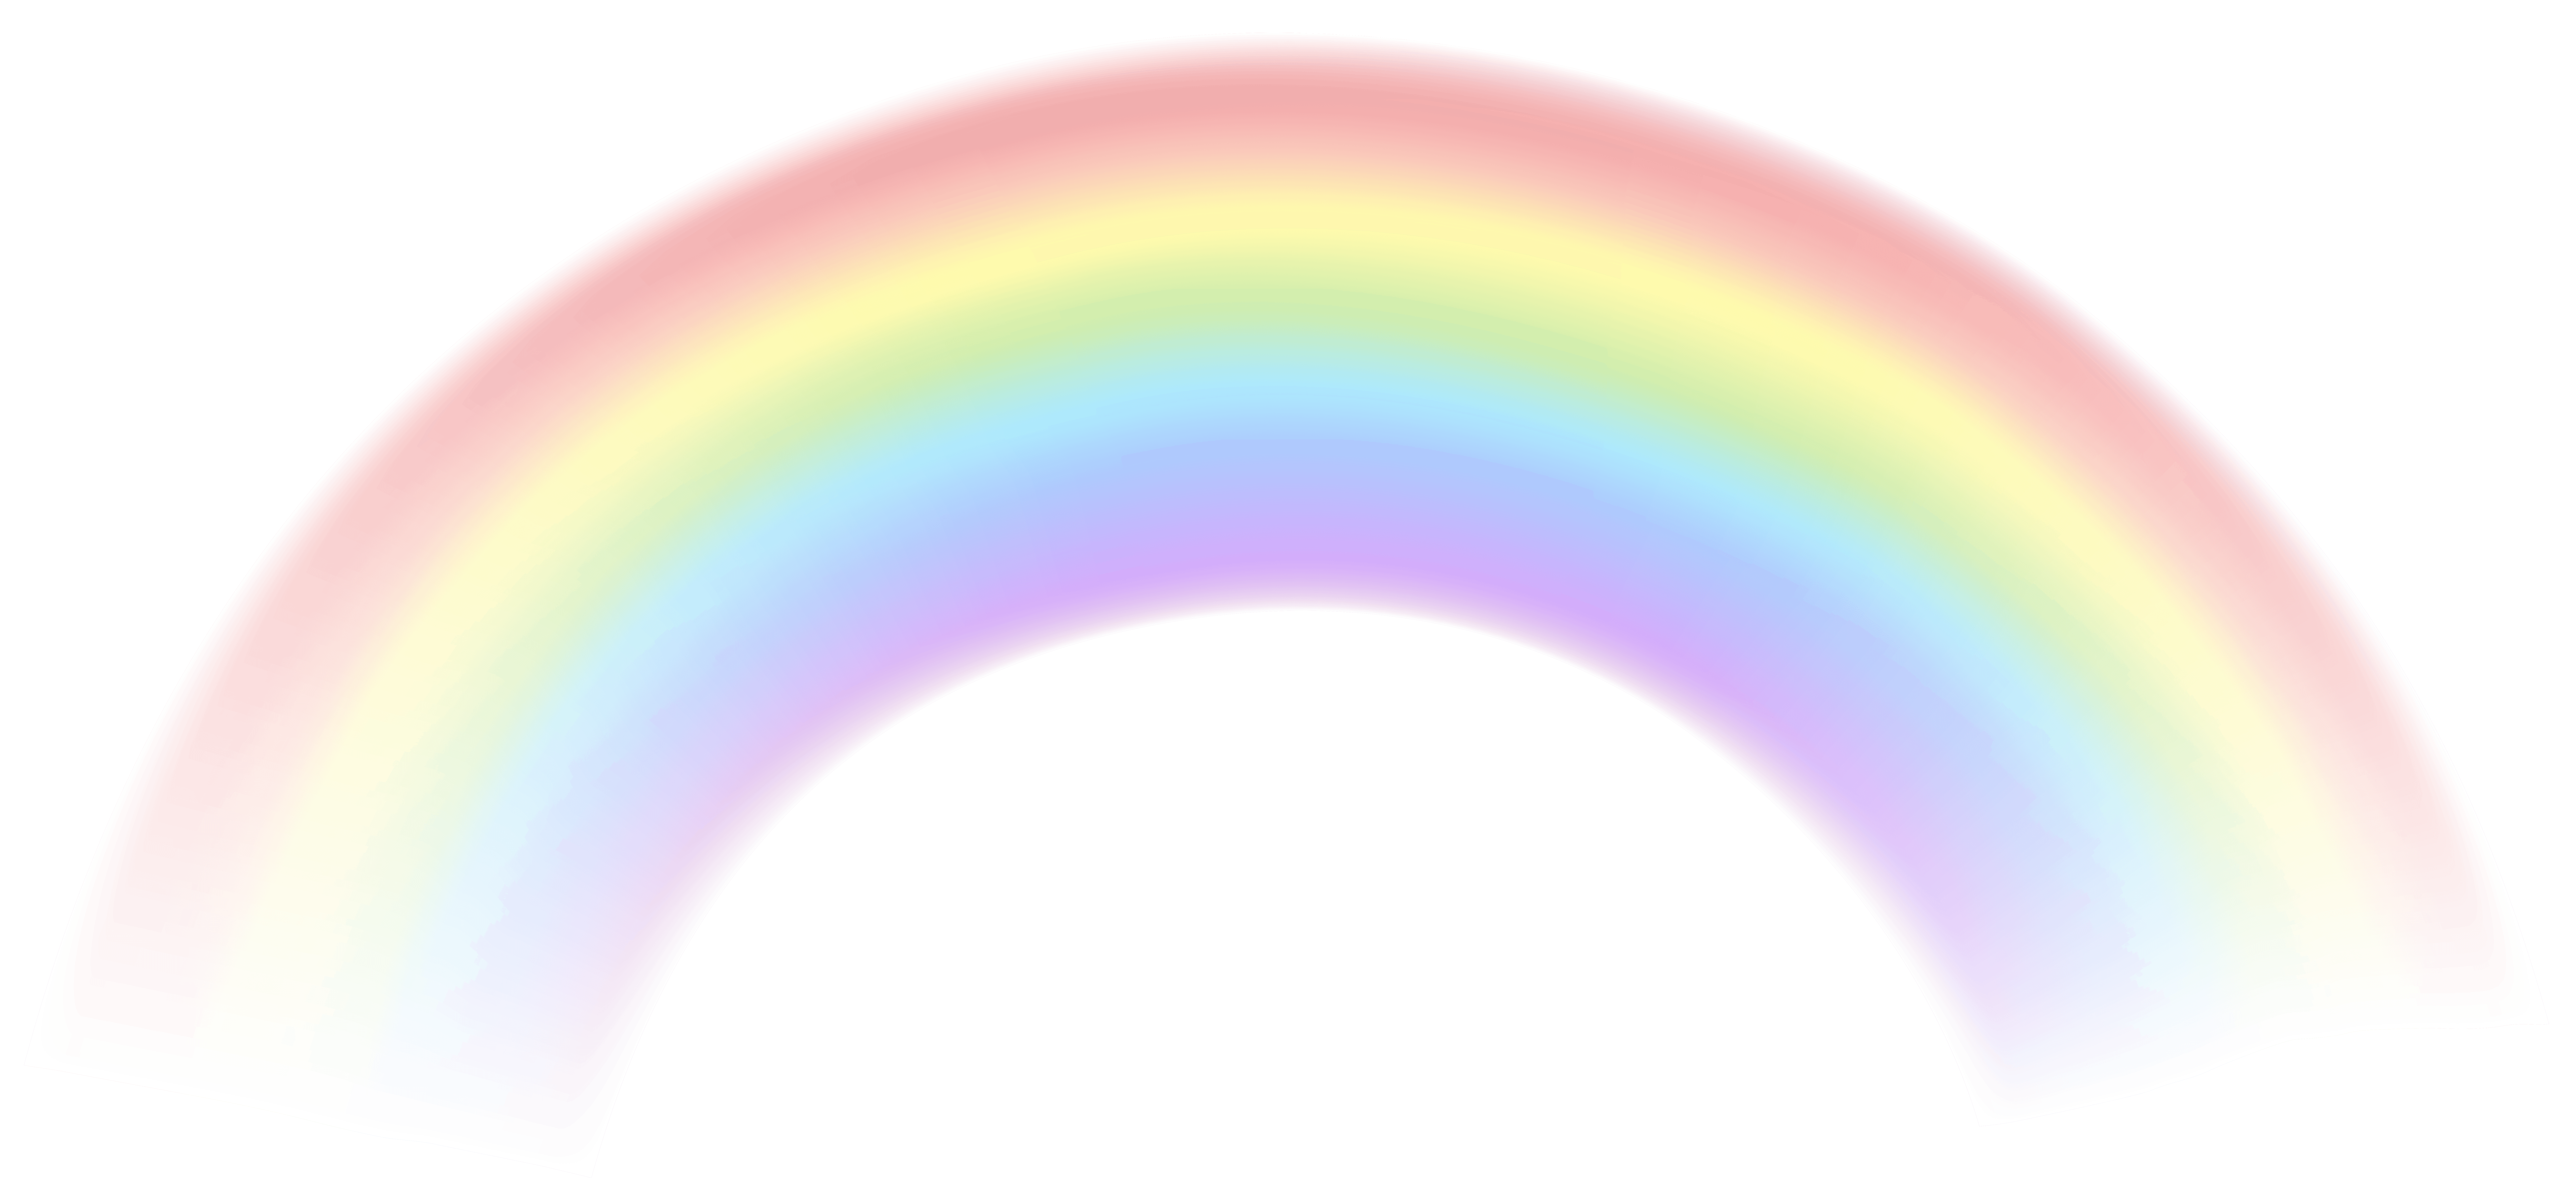 Transparent Rainbow | Free download on ClipArtMag